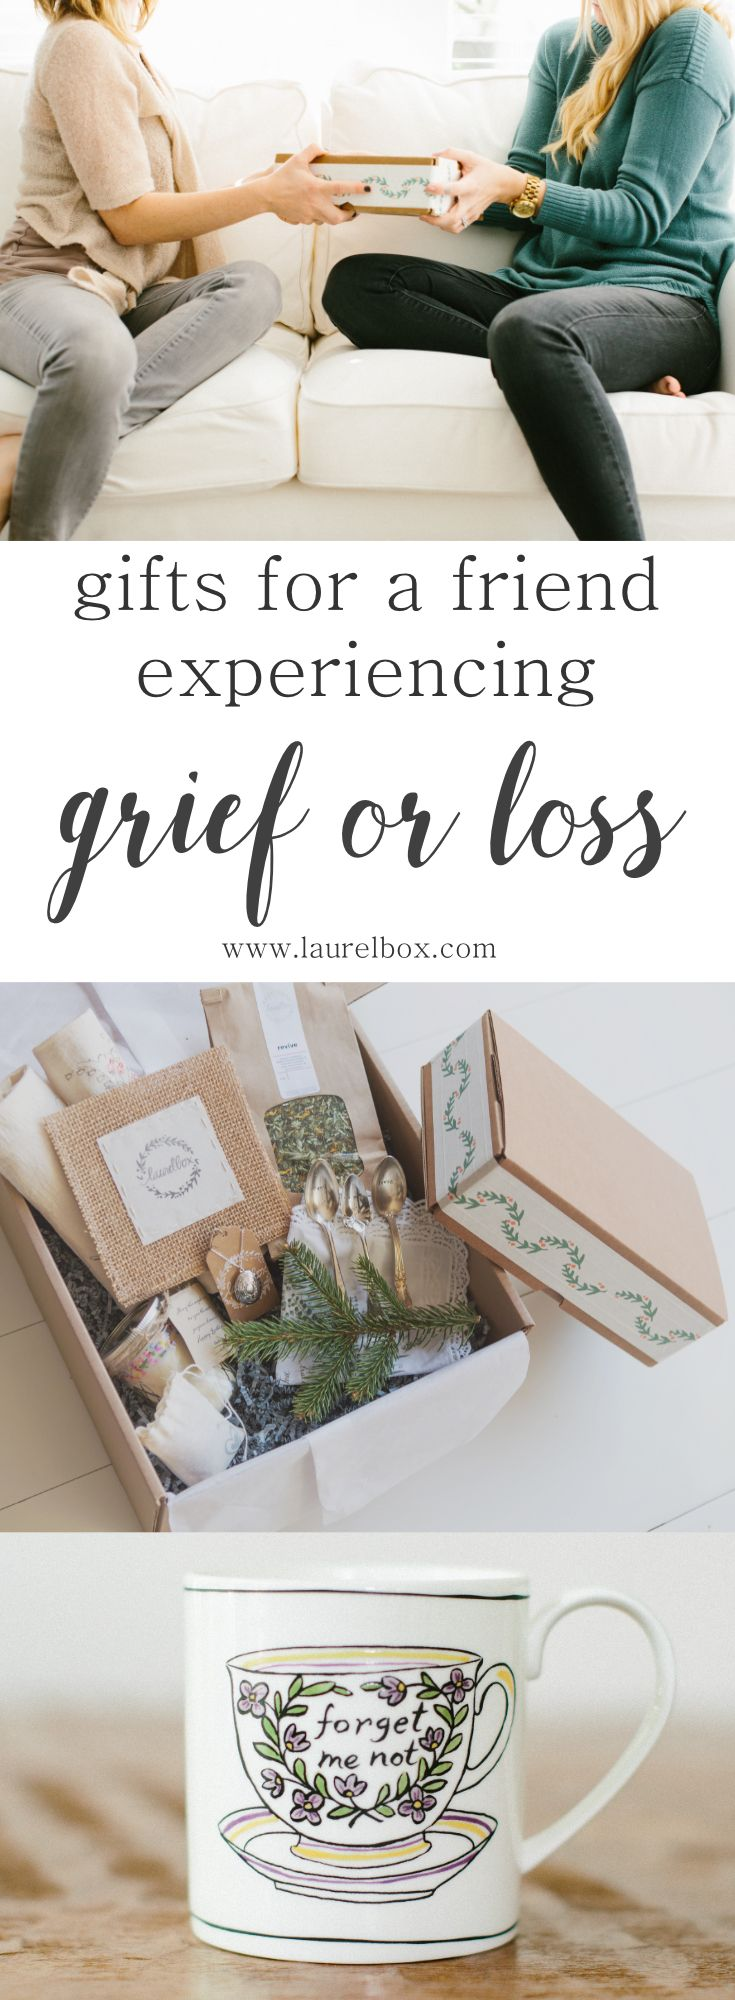 Check out laurel box their shop offers thoughtfully hand